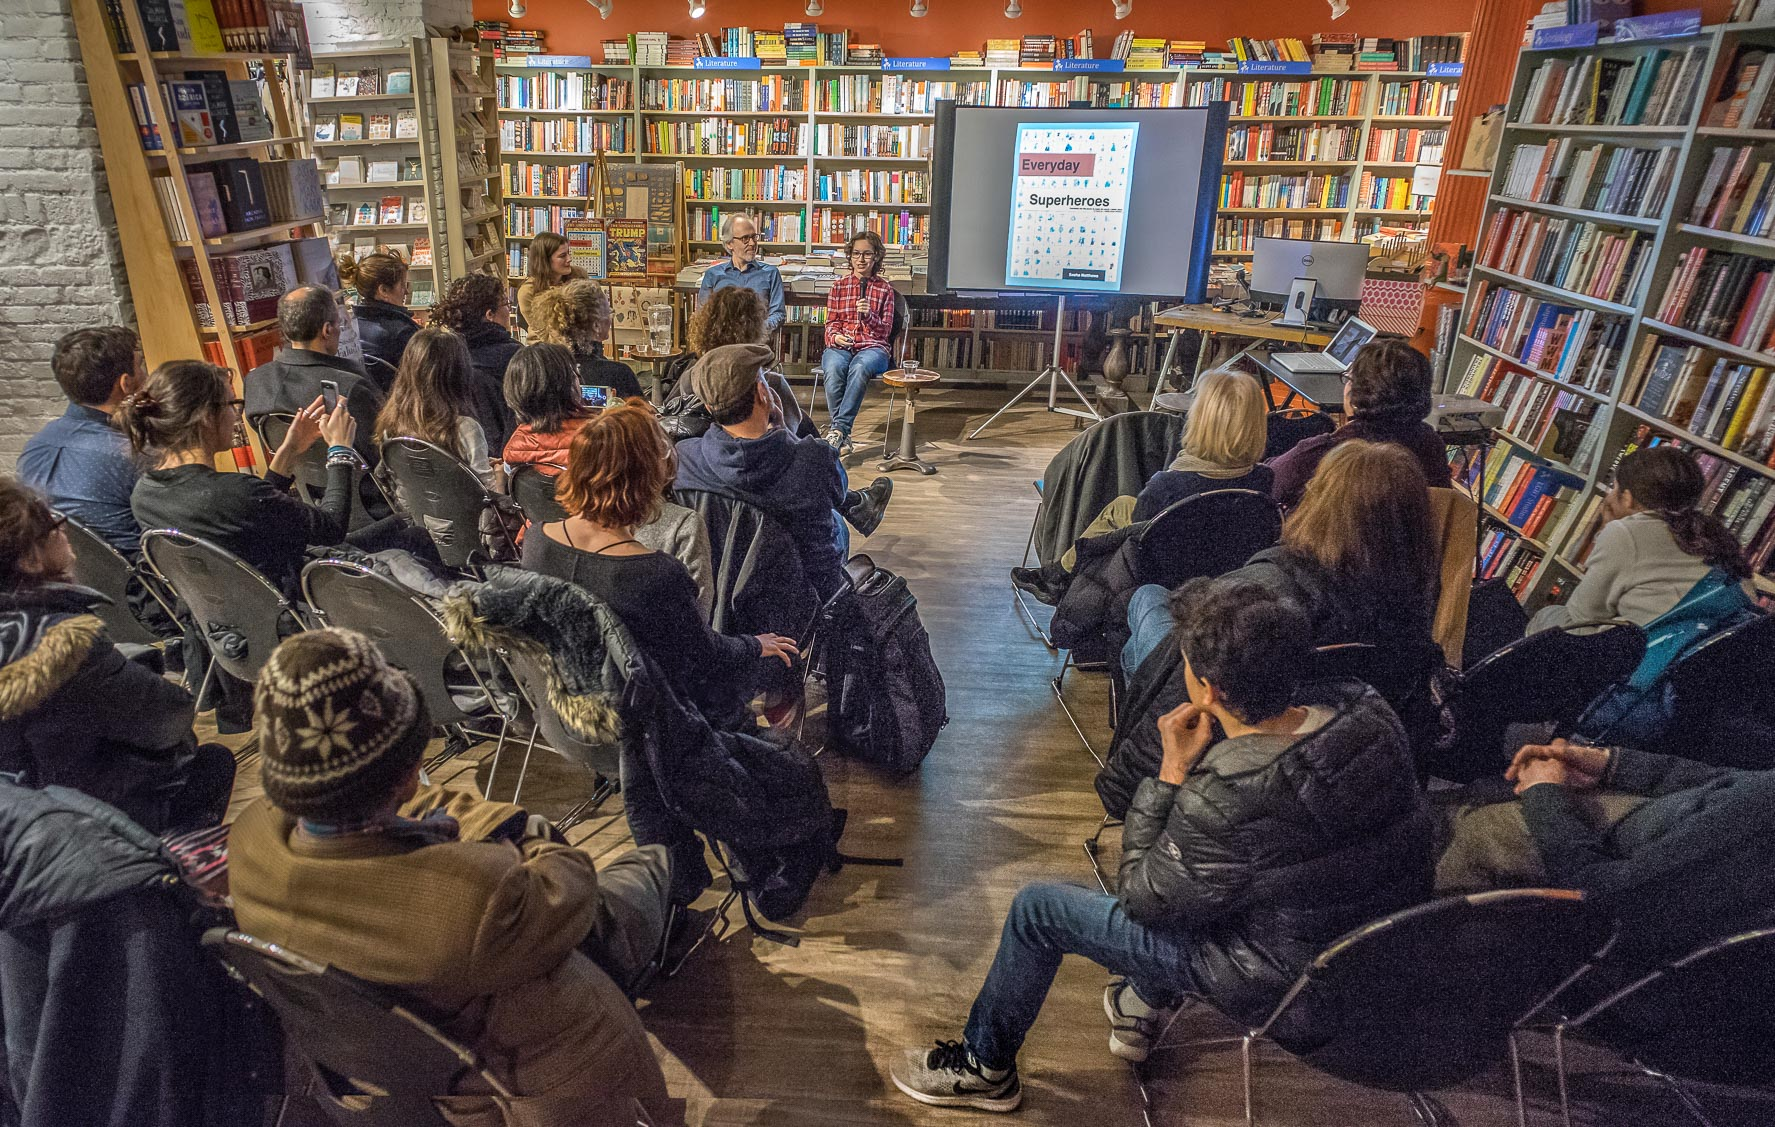 Sasha Matthews Everyday Superheroes book launch with R Sikoryak at Book Culture